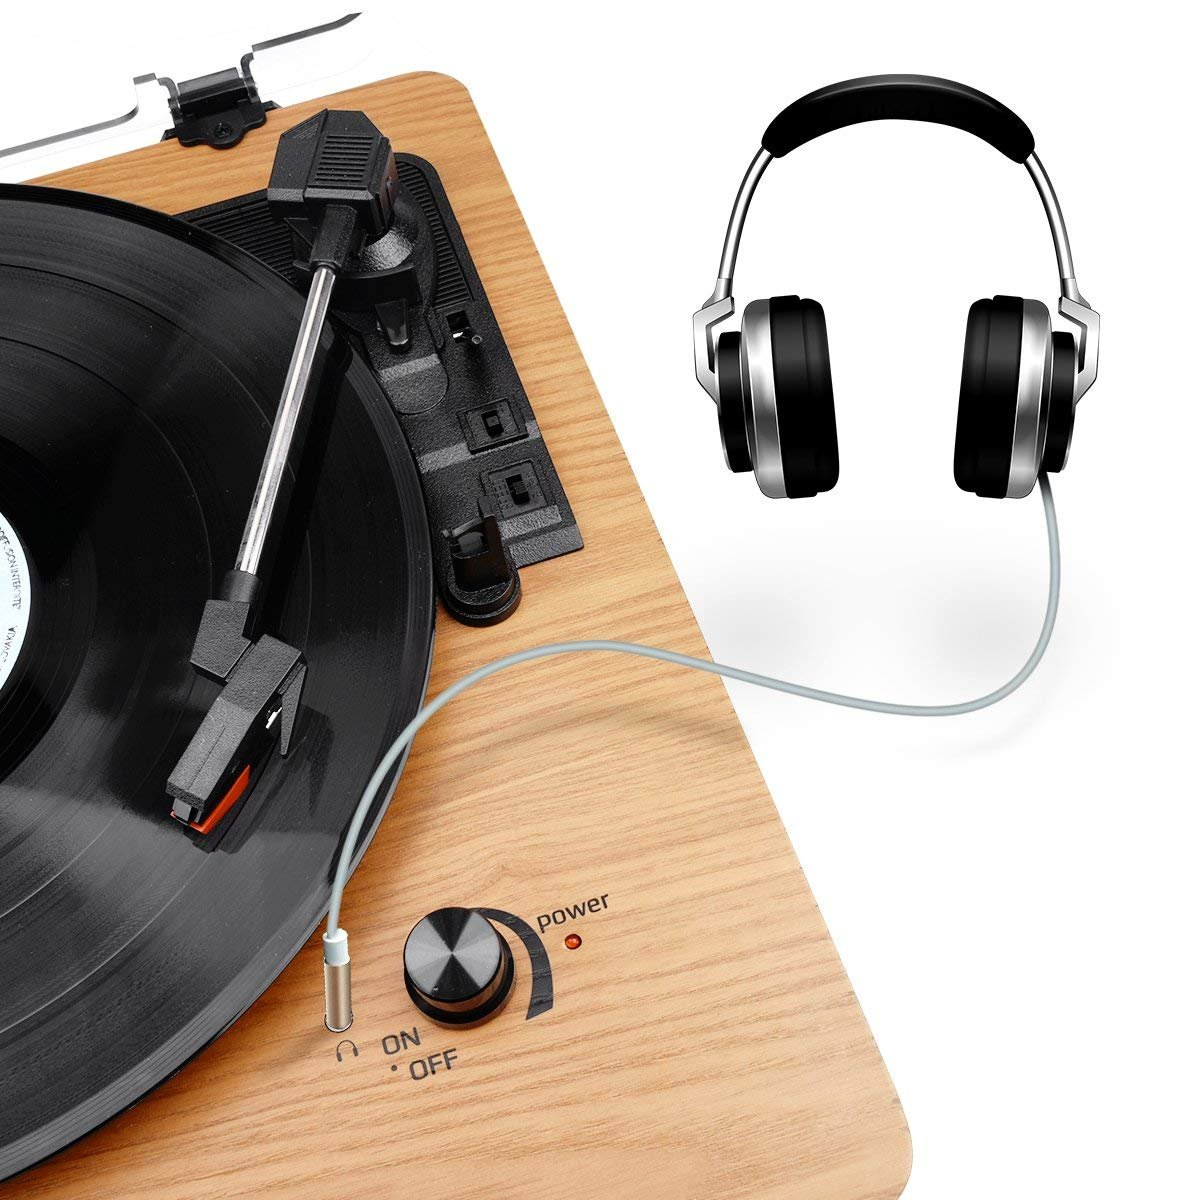 Headphone Jack and RCA Output Wrcibo Record Player Natural Wood Aux-in Vintage Turntable 3-Speed Belt Drive Vinyl Player LP Record Player with Built-in Stereo Speaker